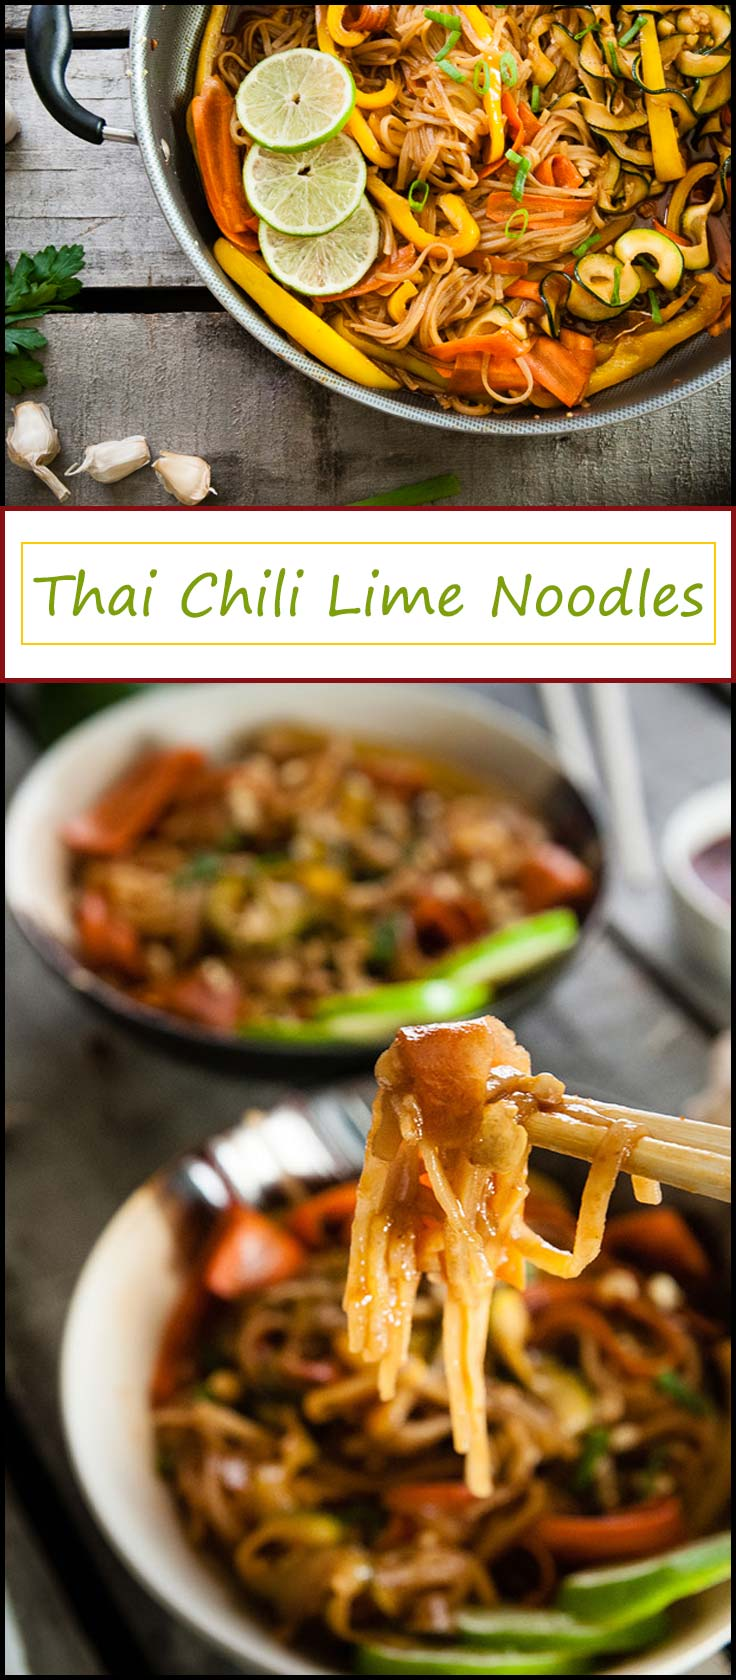 Thai Chili Lime Noodles are ready in 20 minutes and make a versatile vegetarian dinner or lunch that can be made vegan with one small change from www.seasonedsprinkles.com